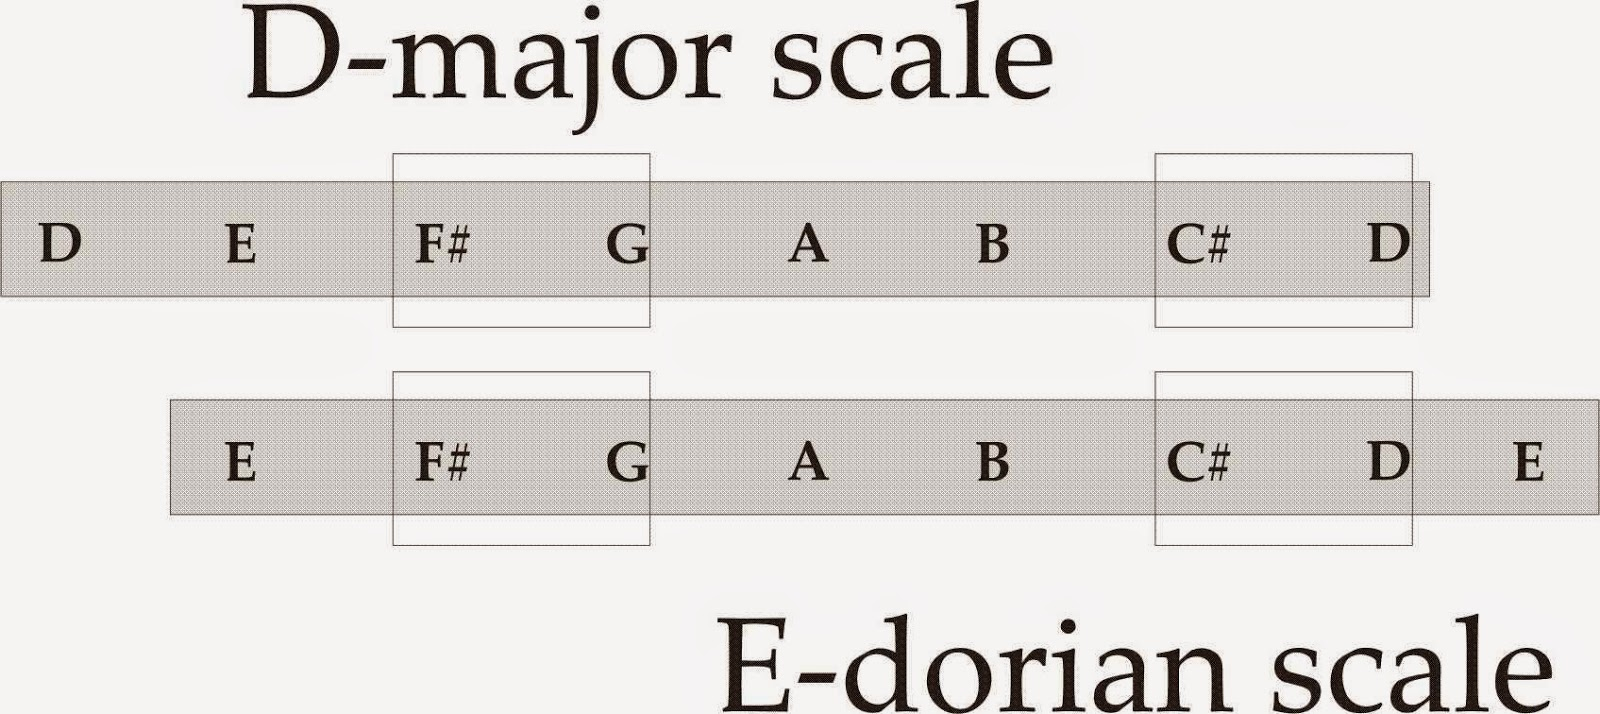 Four strings basslessons weekly basslines 148 spooky atlanta therefore the e dorian scale includes the same seven notes as the d major scale the main difference is a different set of chord progressions hexwebz Gallery